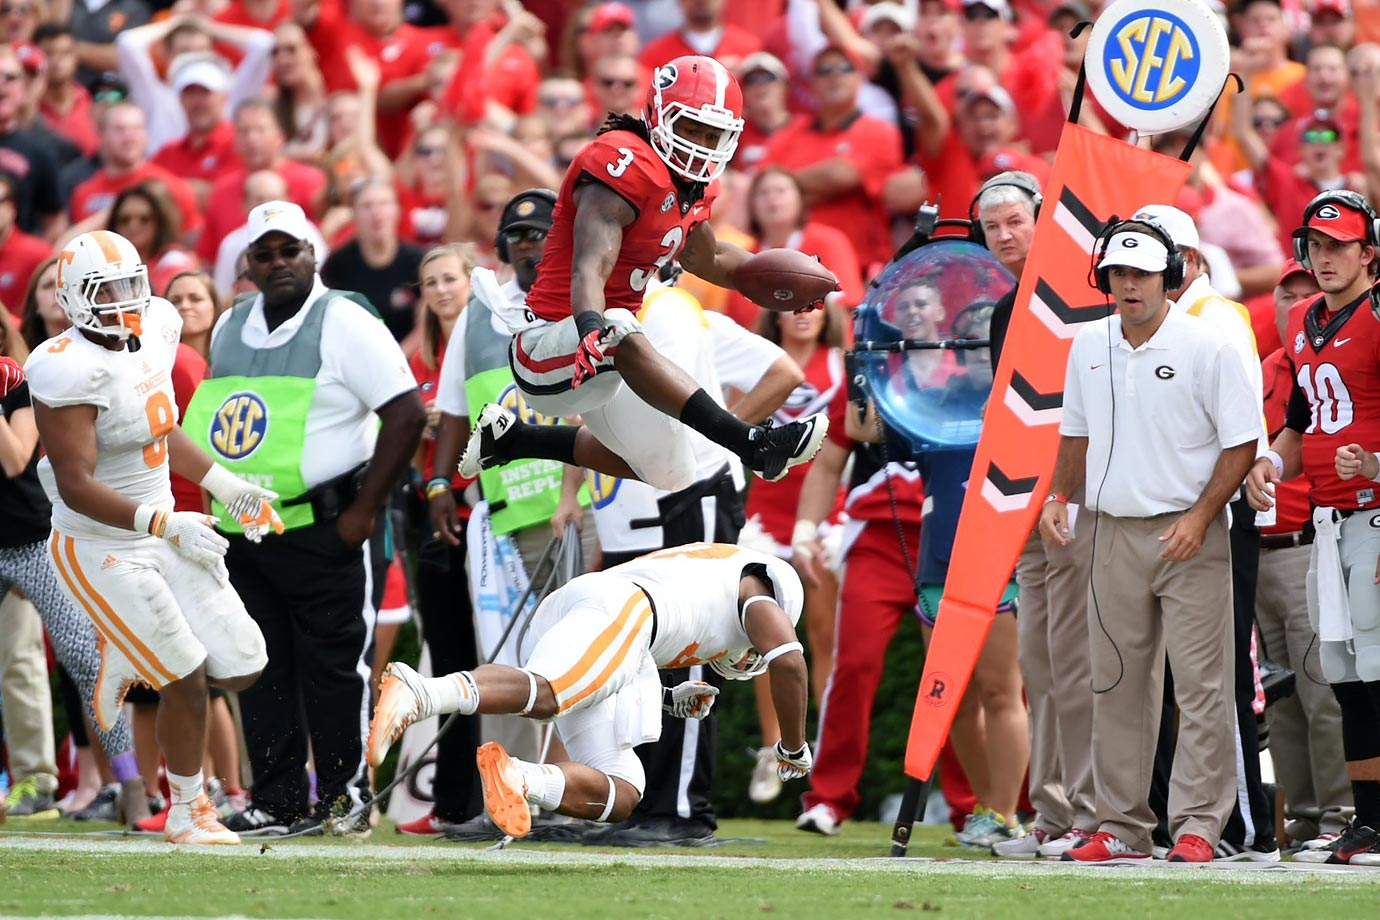 Gurley made a habit of terrorizing SEC defenses, but the uncertainty surrounding his ACL injury is impossible to avoid.